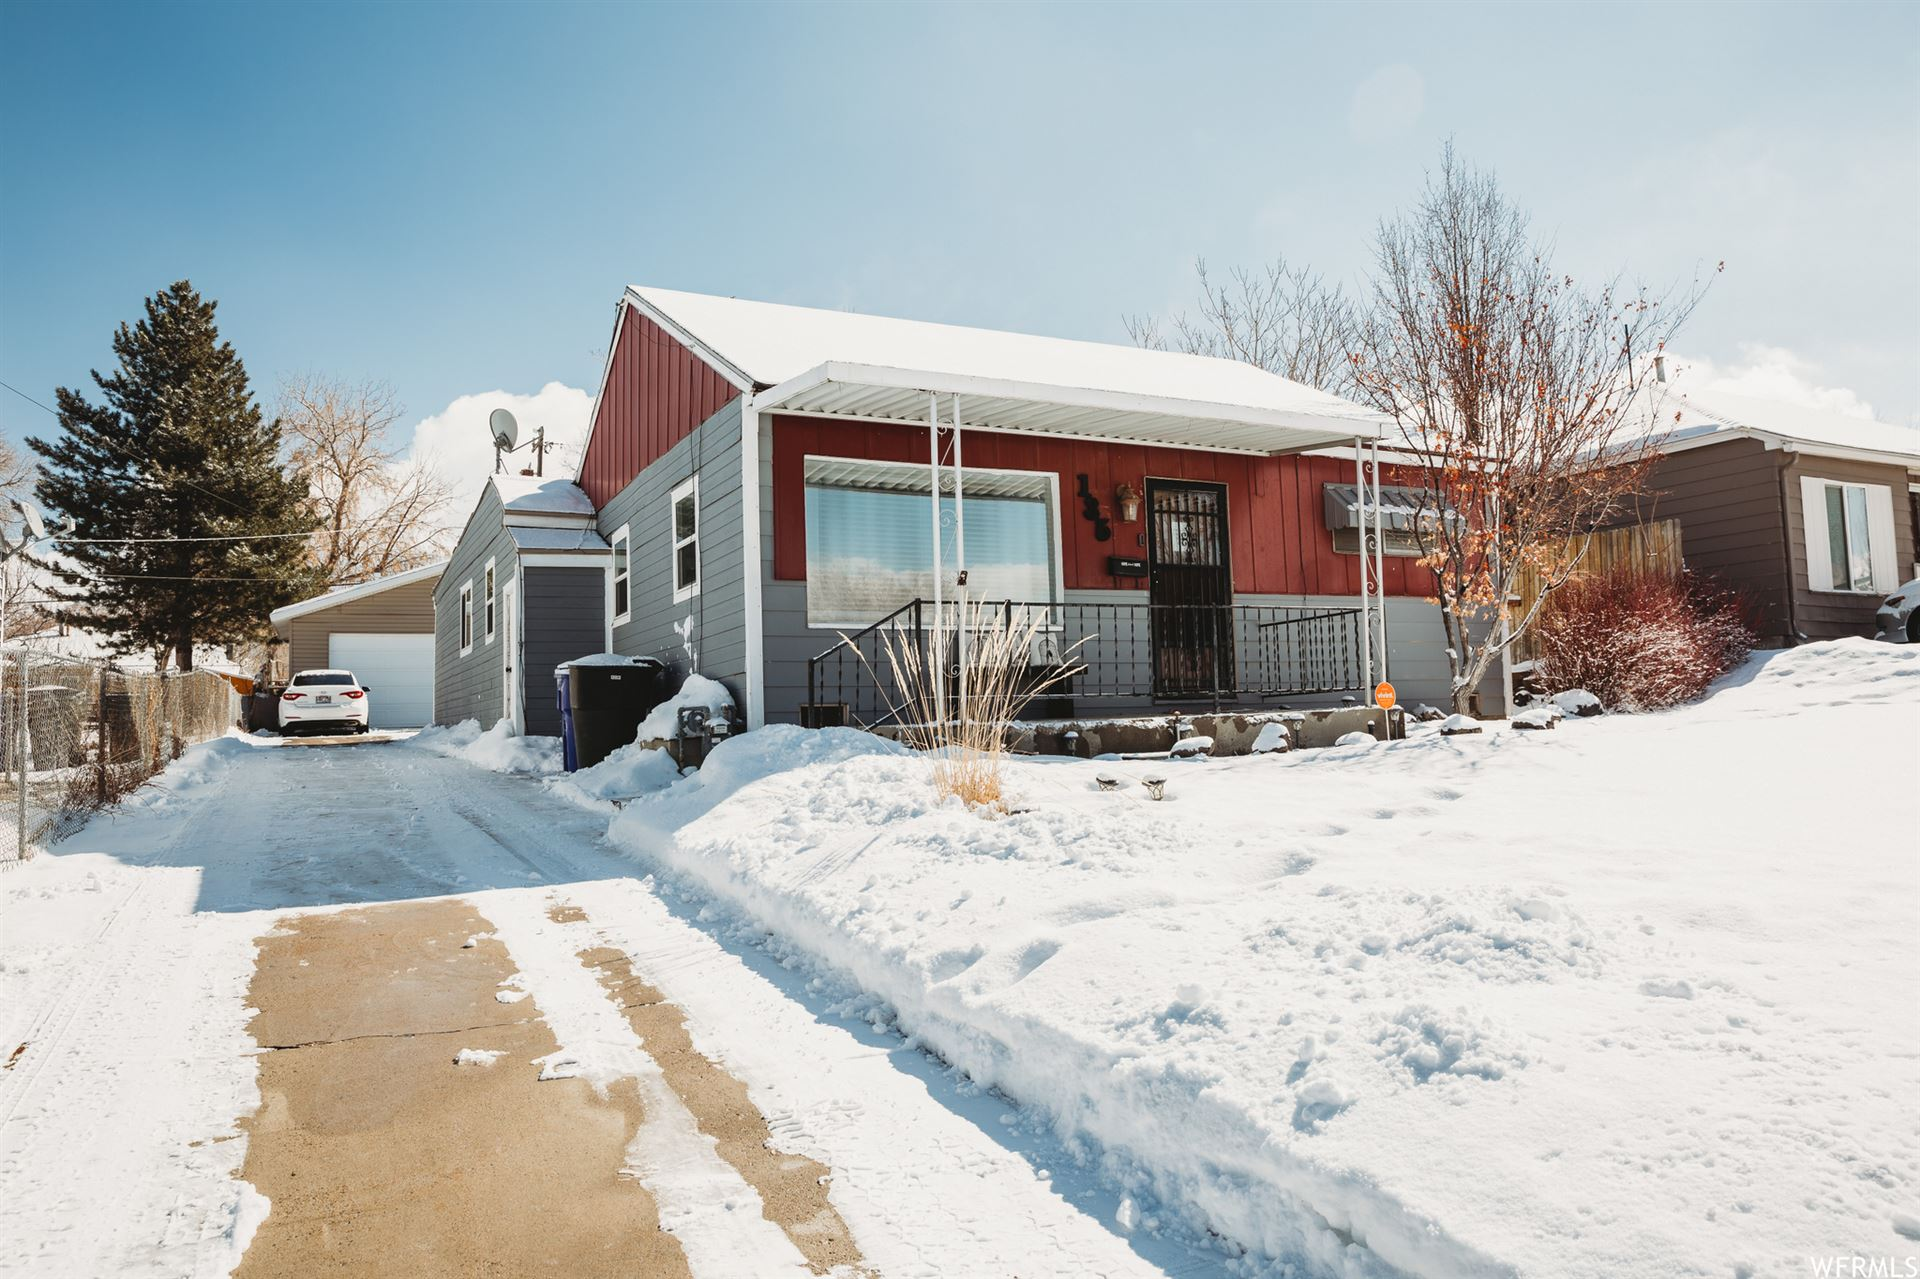 Photo of 135 S FIRST E ST, Tooele, UT 84074 (MLS # 1726982)